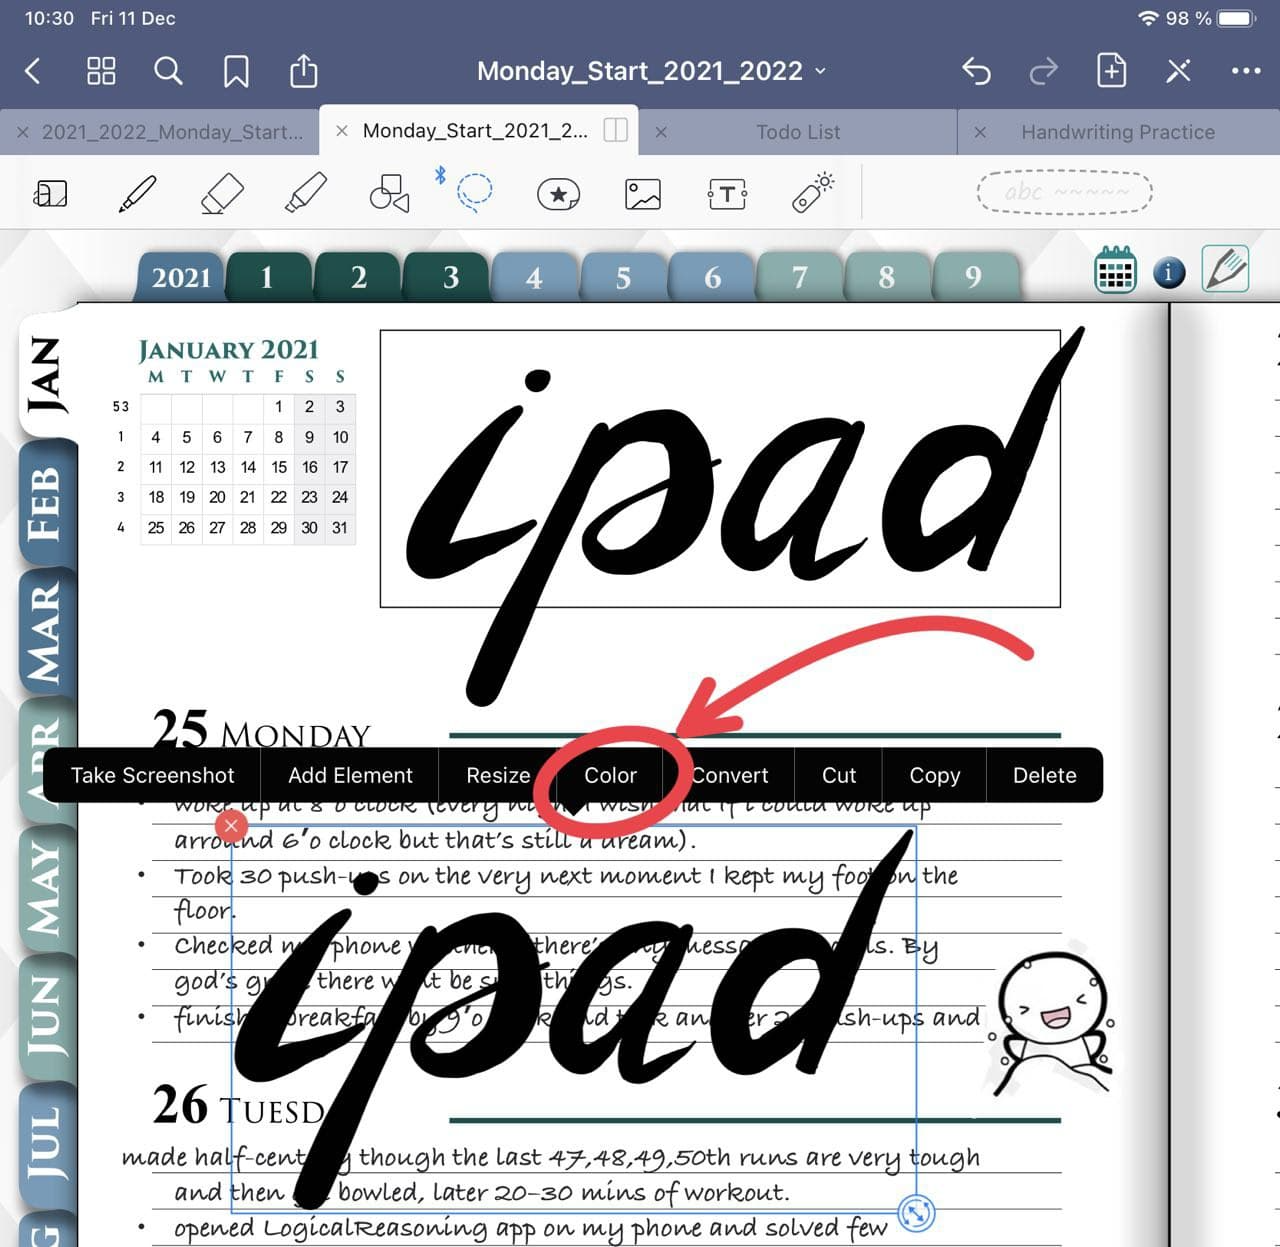 copy handwriting text in goodnotes ipadplanner.com